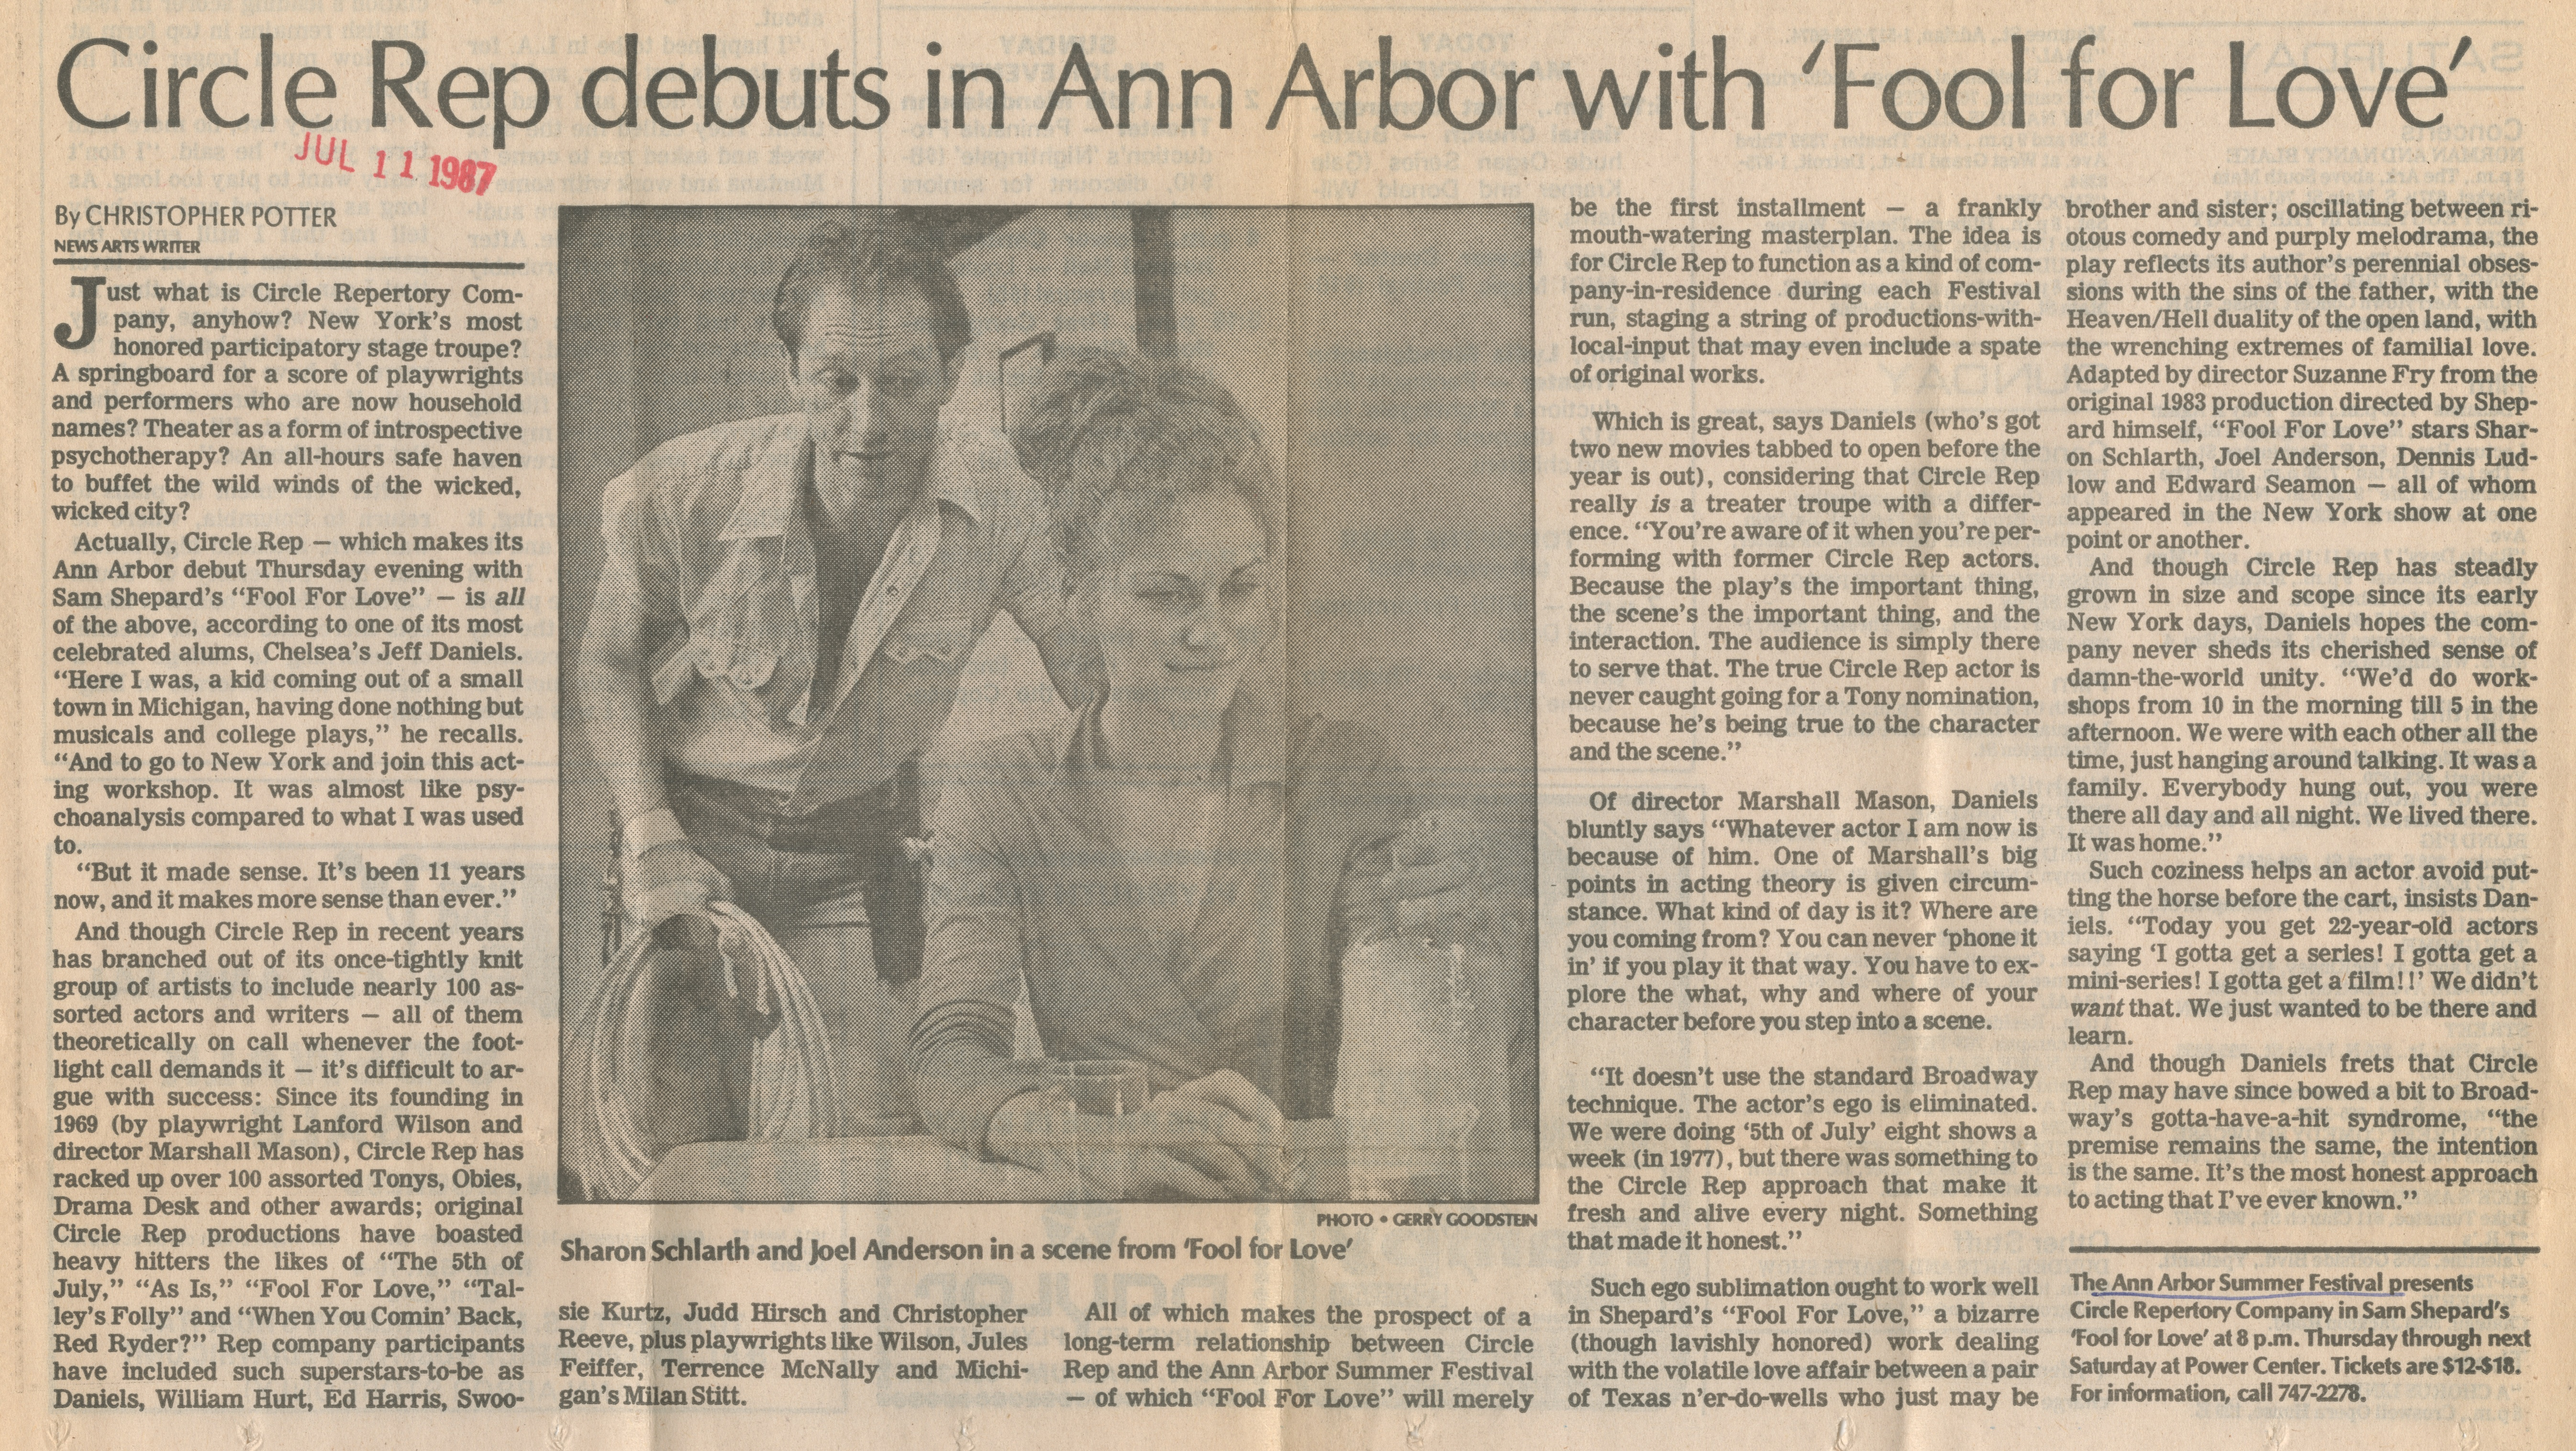 Circle Rep debuts in Ann Arbor with 'Fool for Love' image